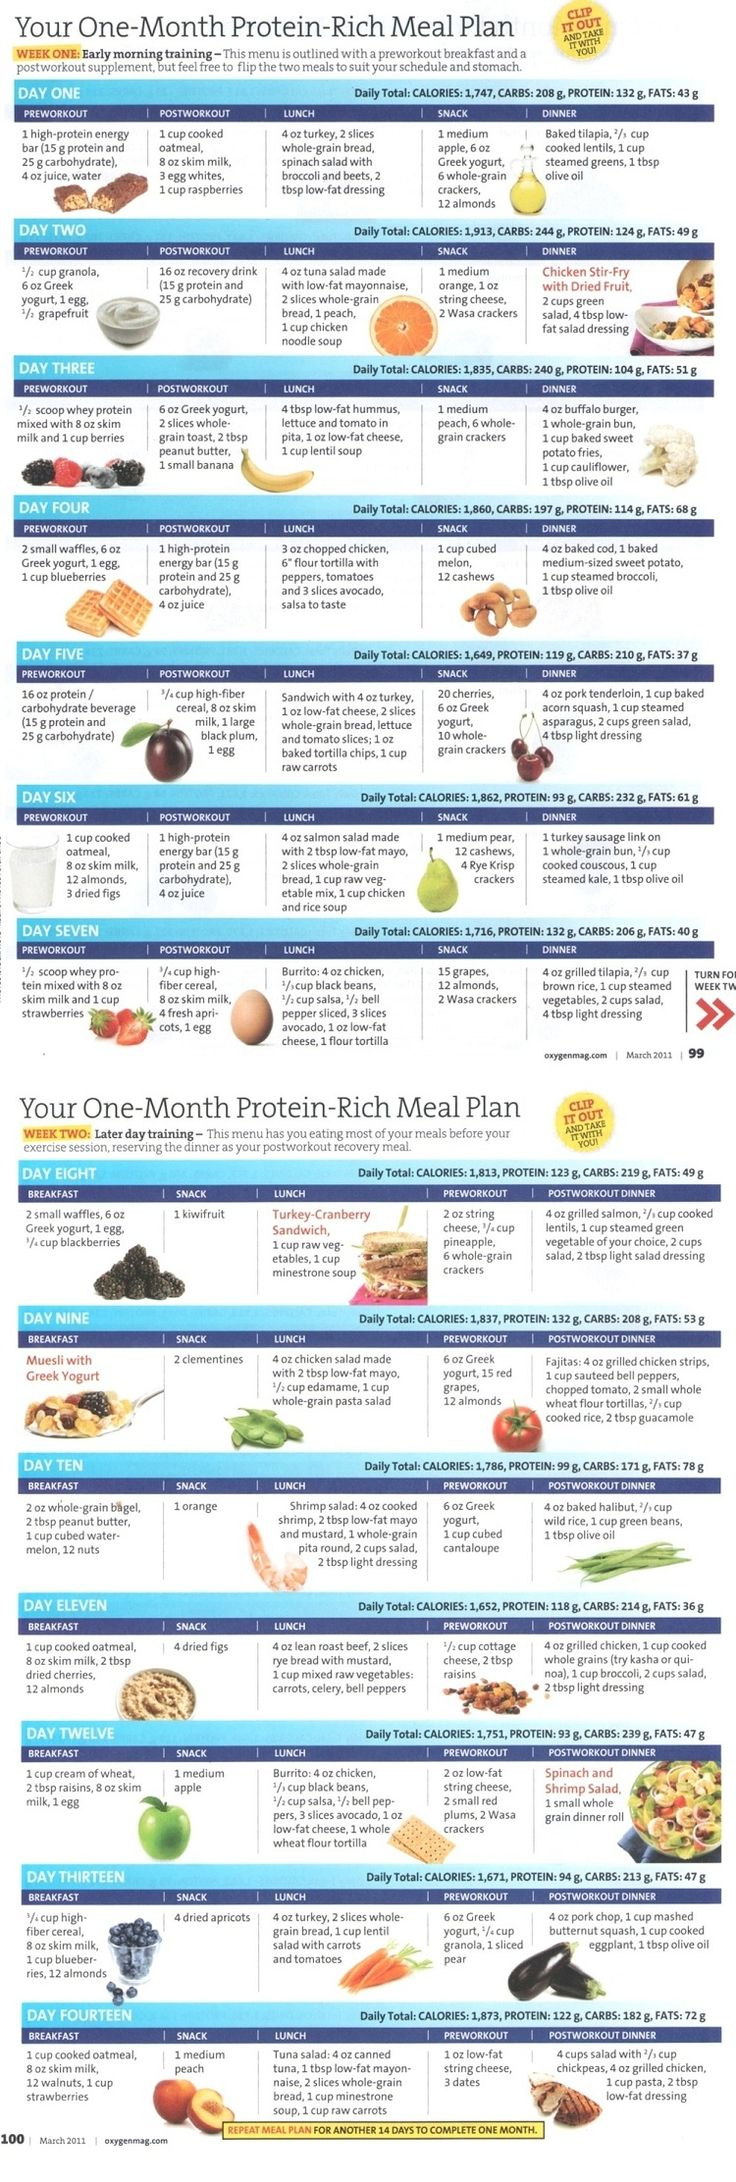 more protein meal ideas..... or check out this link: https://www.dukehealth.org/services/weight_loss_surgery/care_guides/bariatric_surgery_diet_manual/the_recommended_diet_following_bariatric_surgery